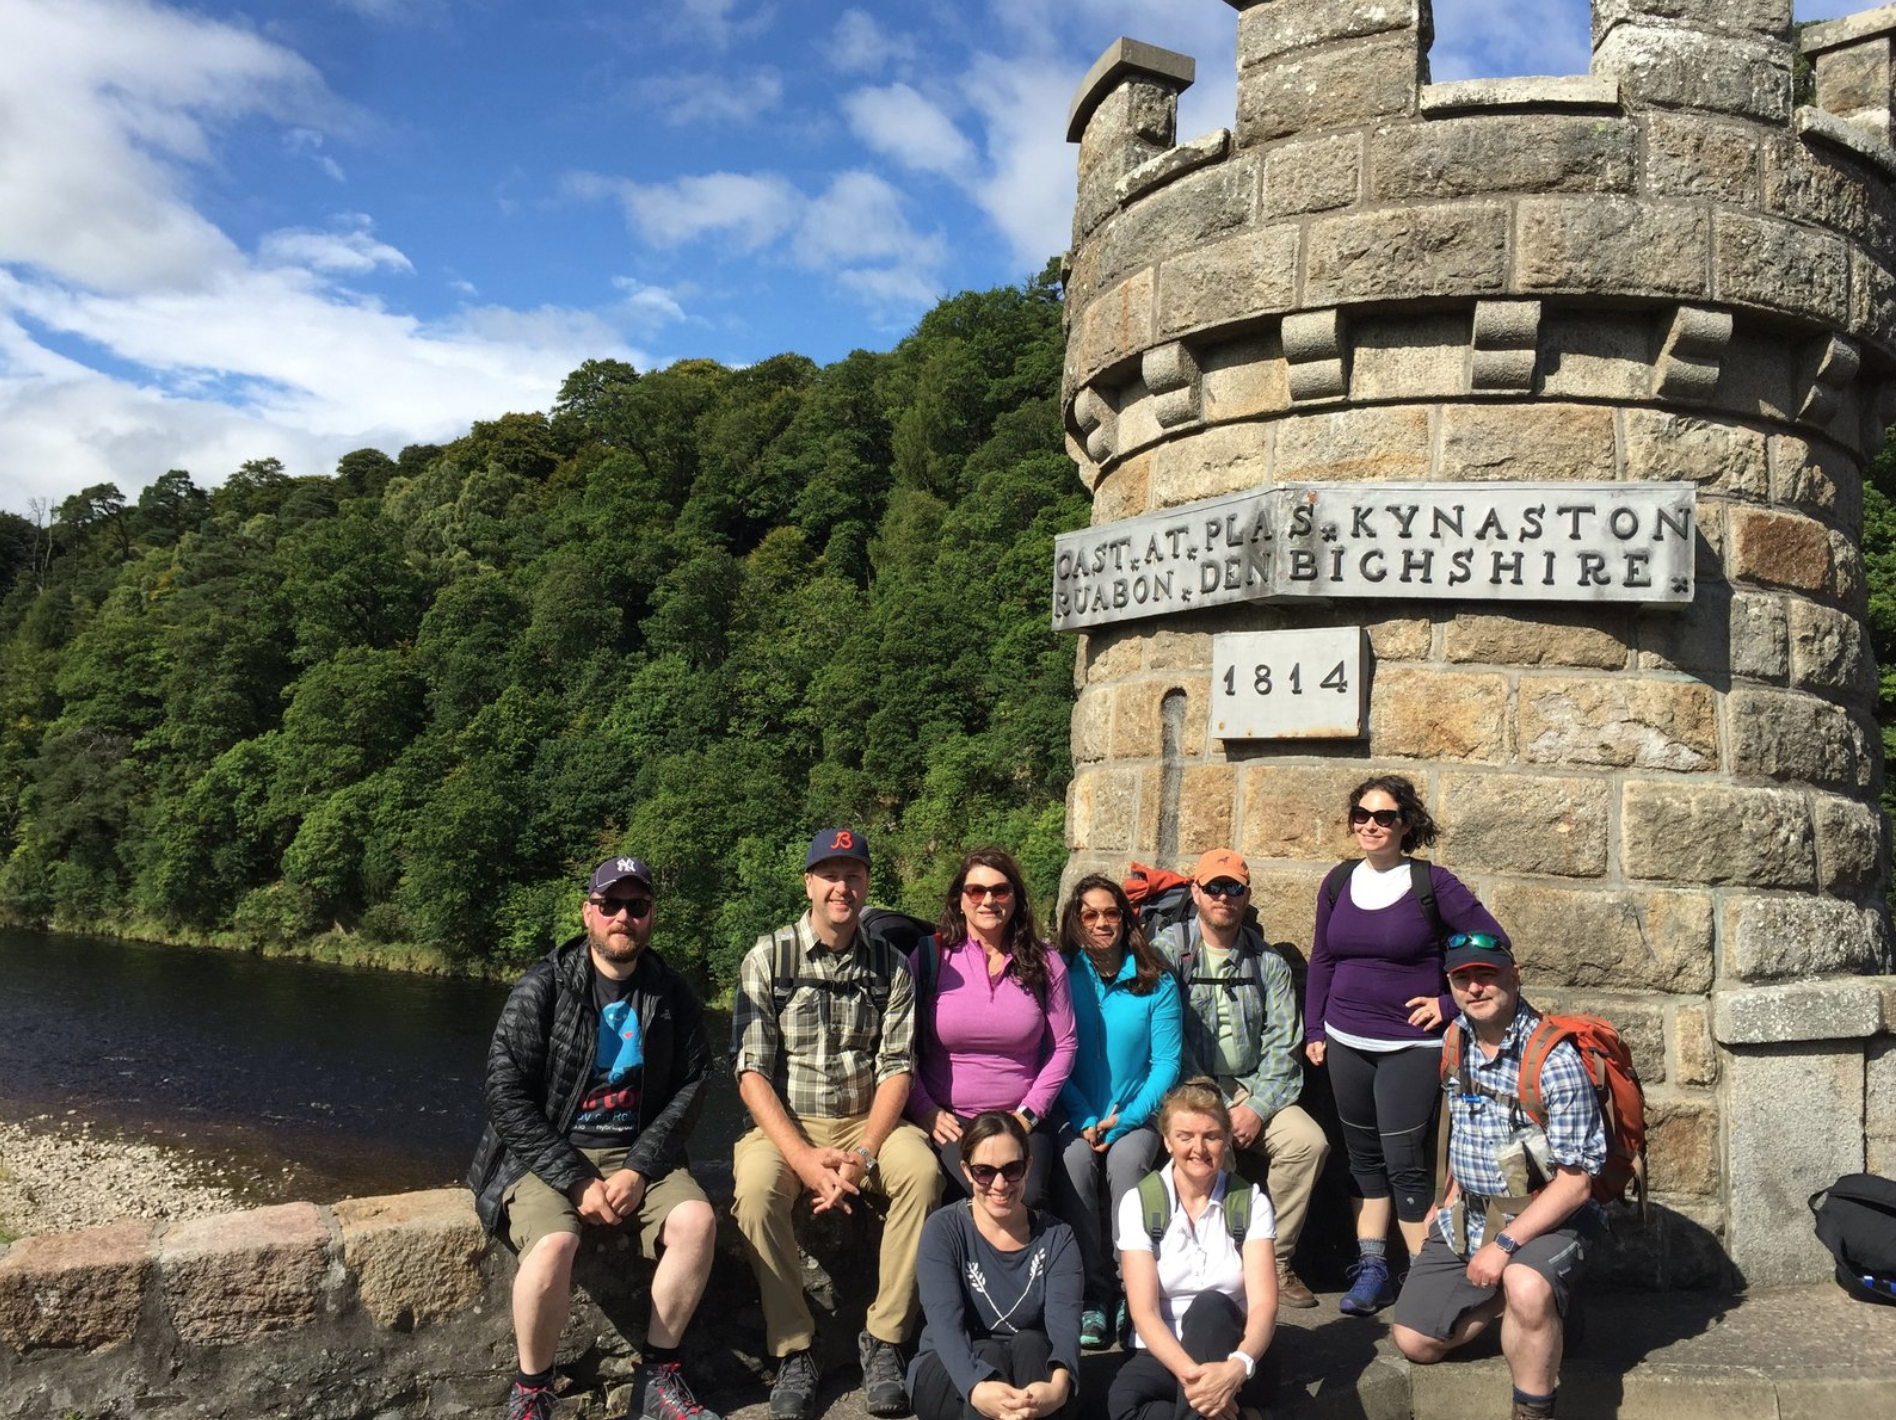 You take the high road and I'll take the low road - Walkshop retreat through the Highlands of Scotland and the towns and distilleries along the Speyside WayAugust, 2017